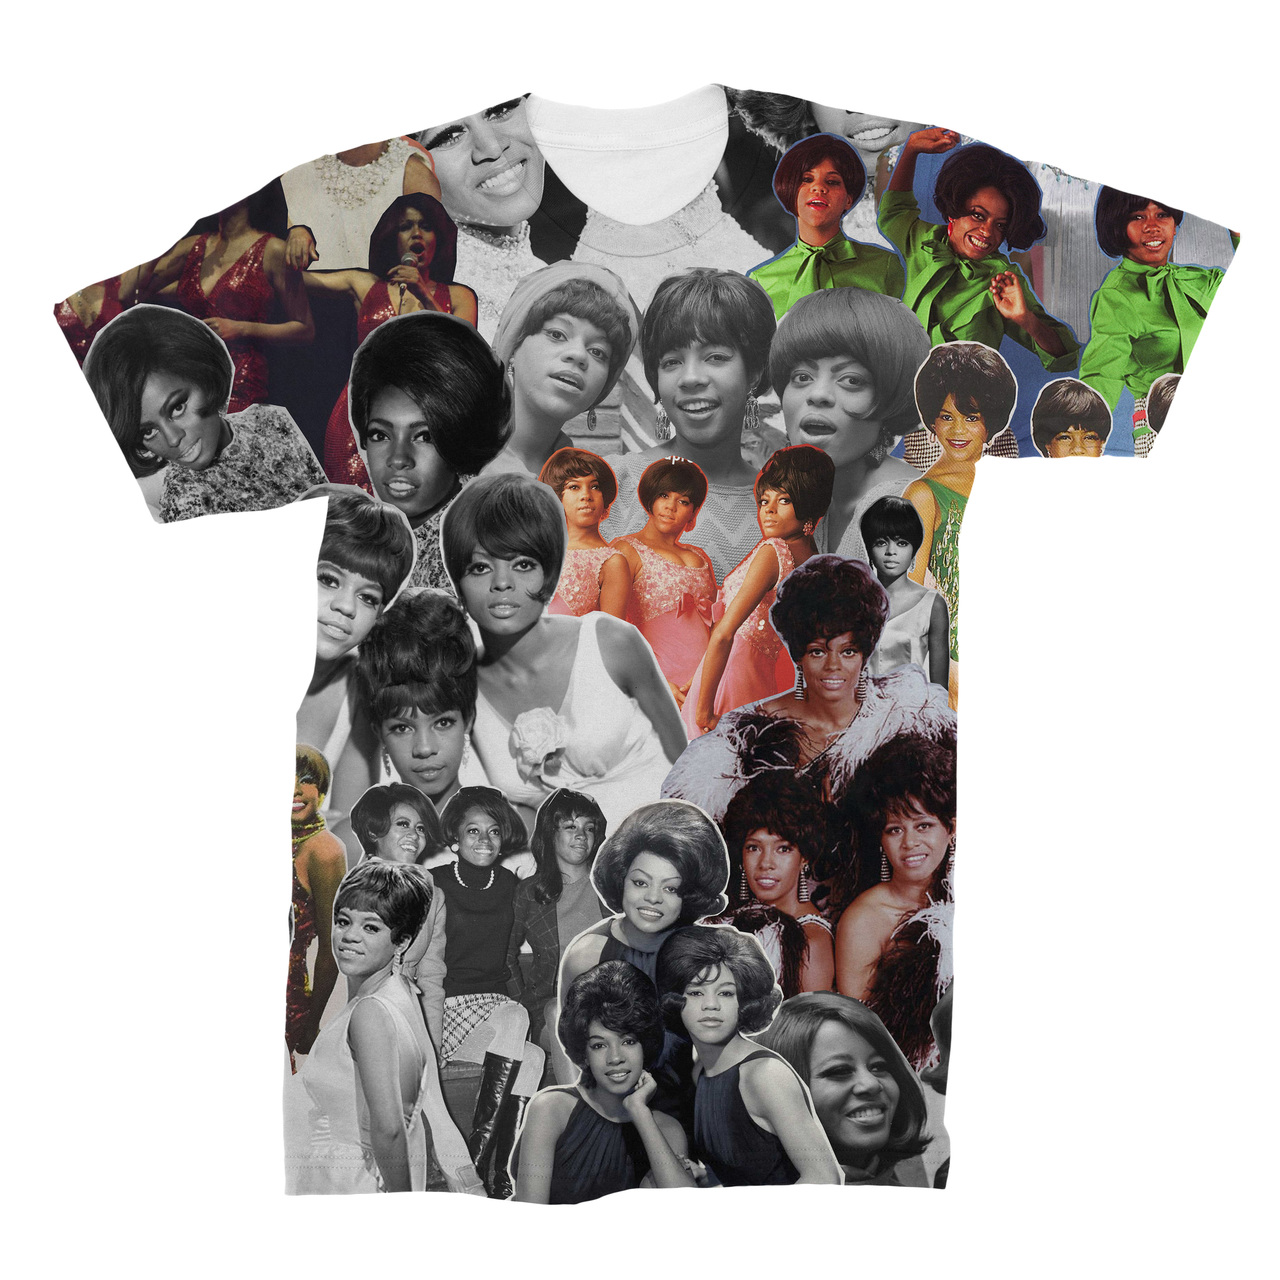 c5cdd33ac54e The Supremes Photo Collage T-Shirt - Subliworks